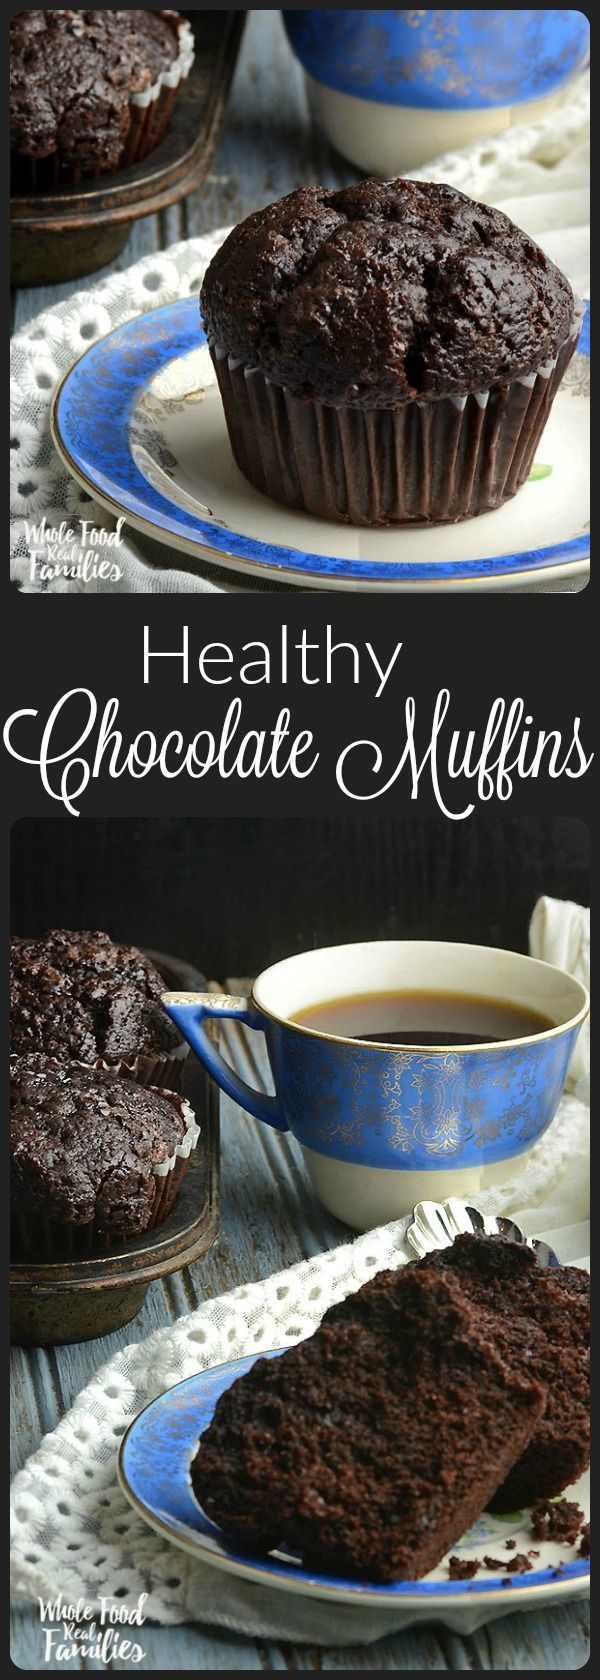 These Healthy Chocolate Muffins help you eat well and have your chocolate too! They are richly chocolate, so my kids love them. And healthy enough that I can actually serve them for breakfast with no guilt! Just a tip: these freeze great! Just thaw them in the fridge for a quick breakfast or the lunchbox! @wholefoodrealfa